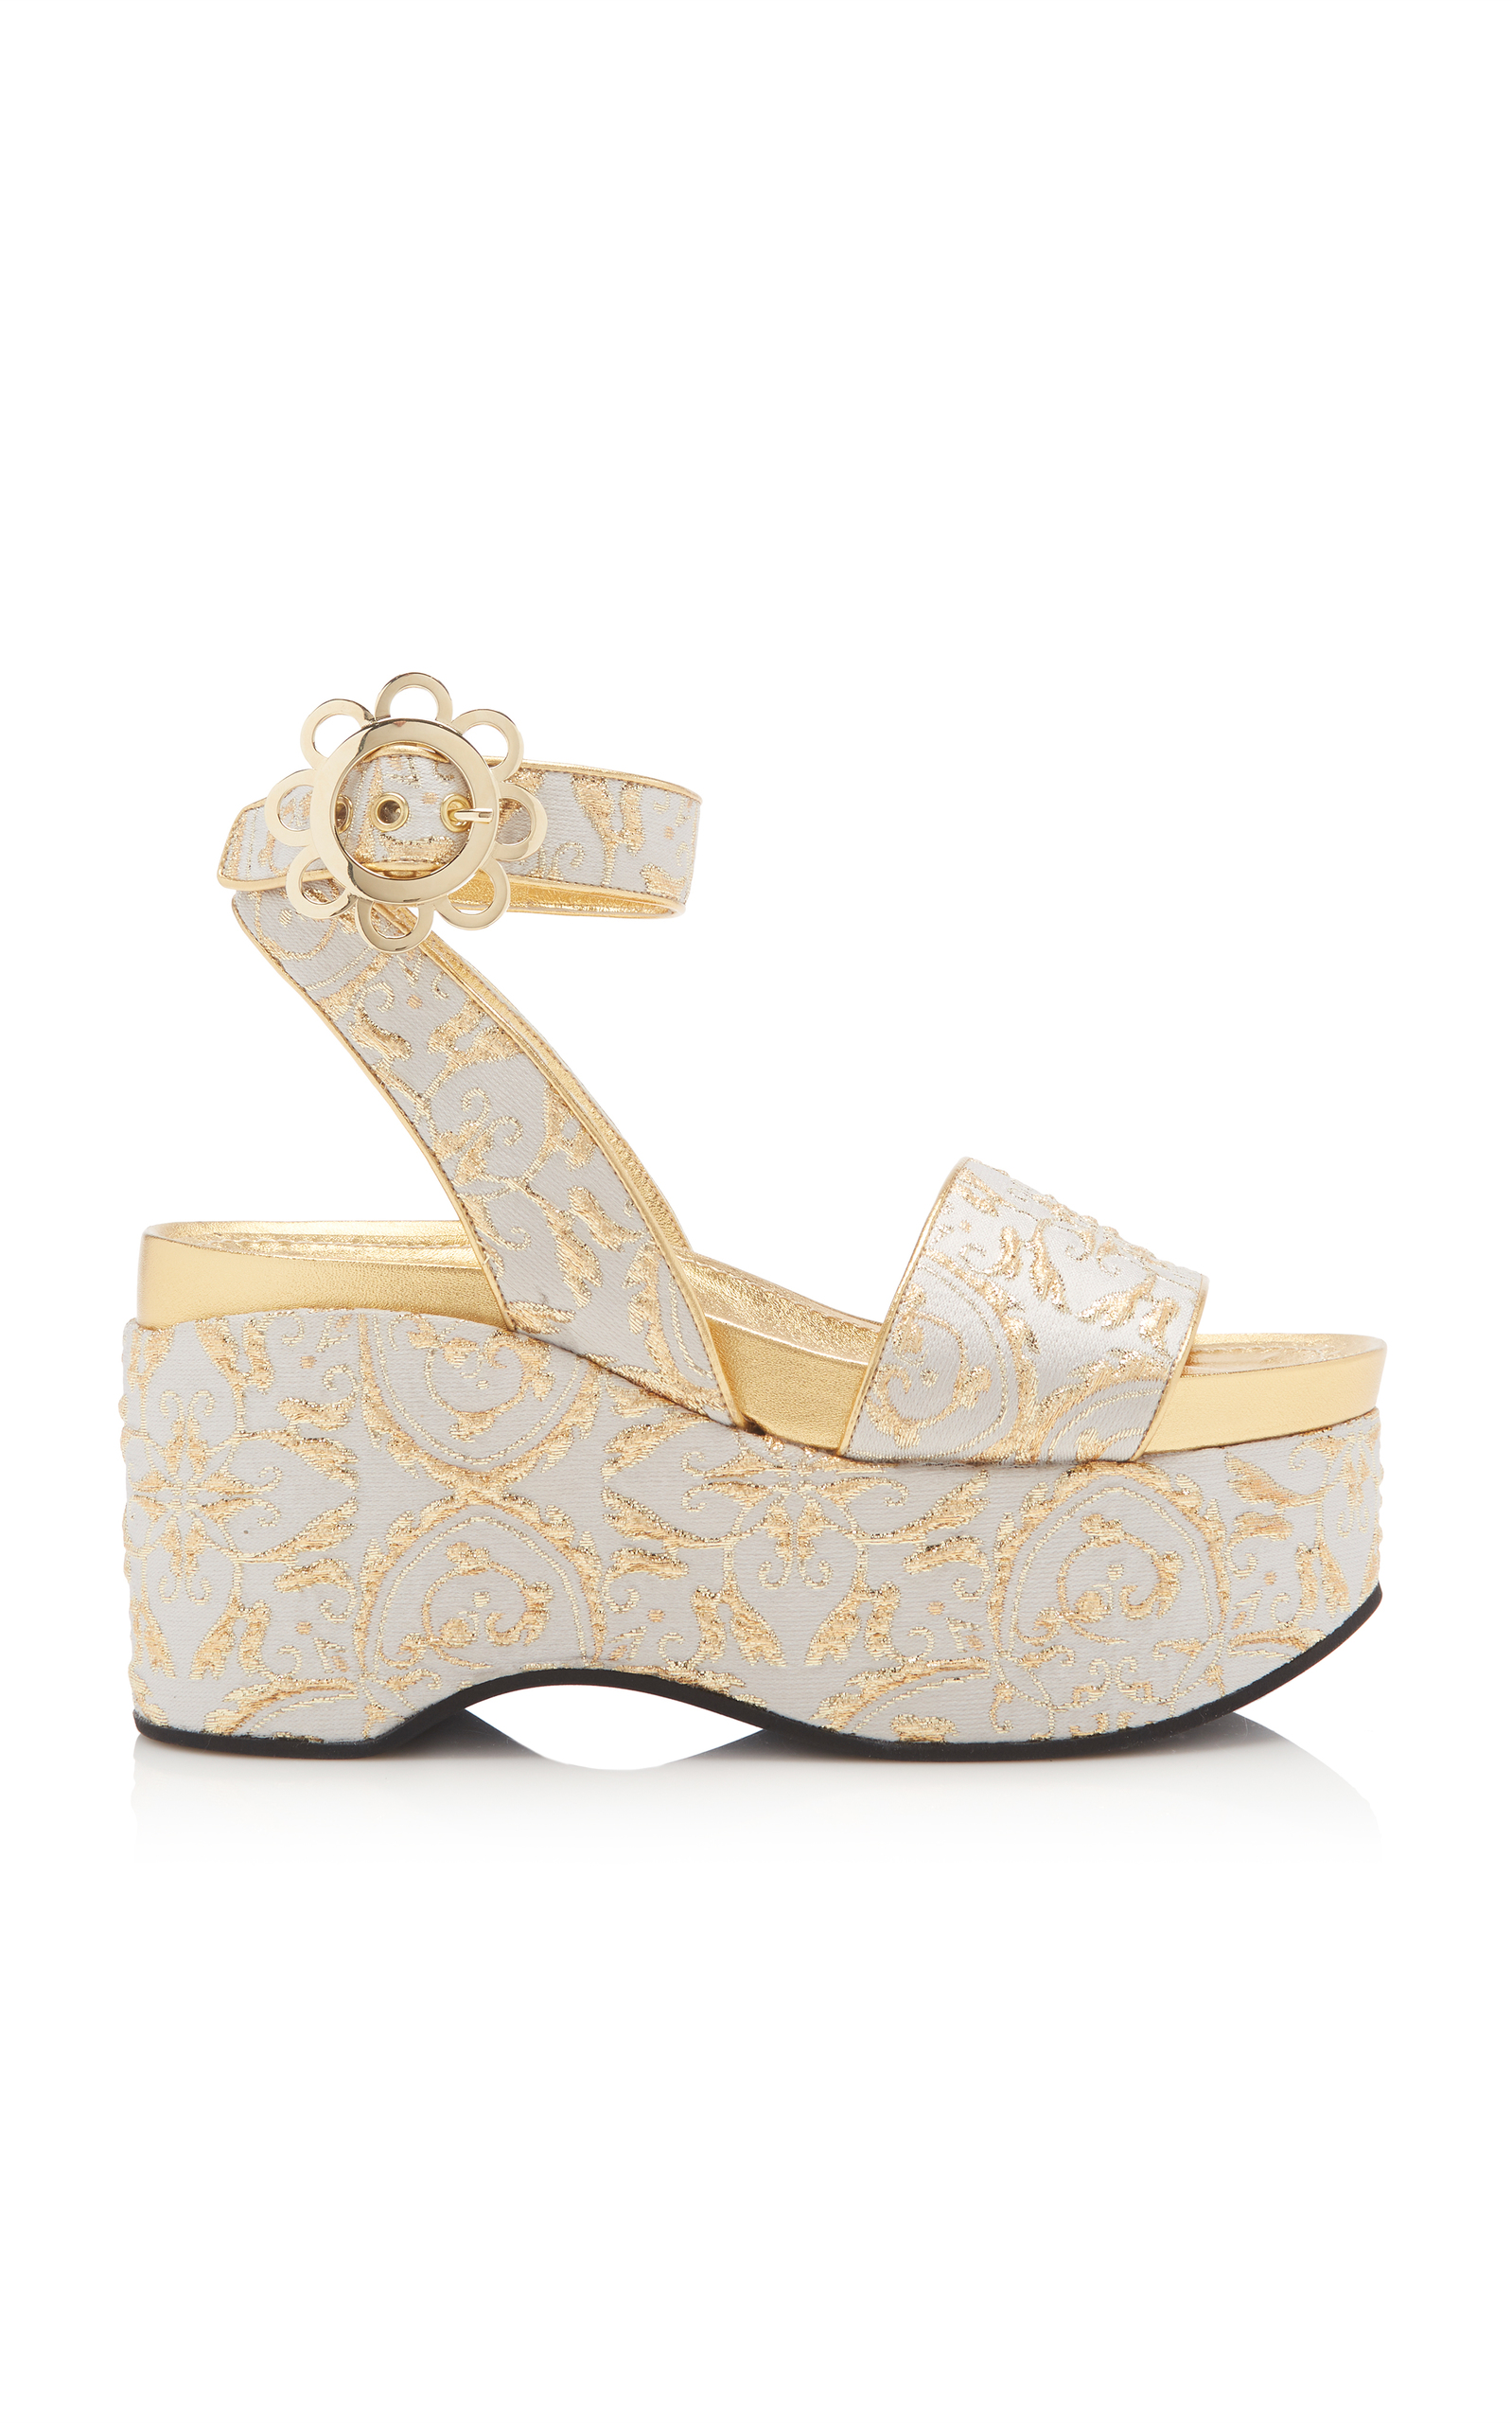 DAISY-BUCKLE BROCADE PLATFORM SANDALS